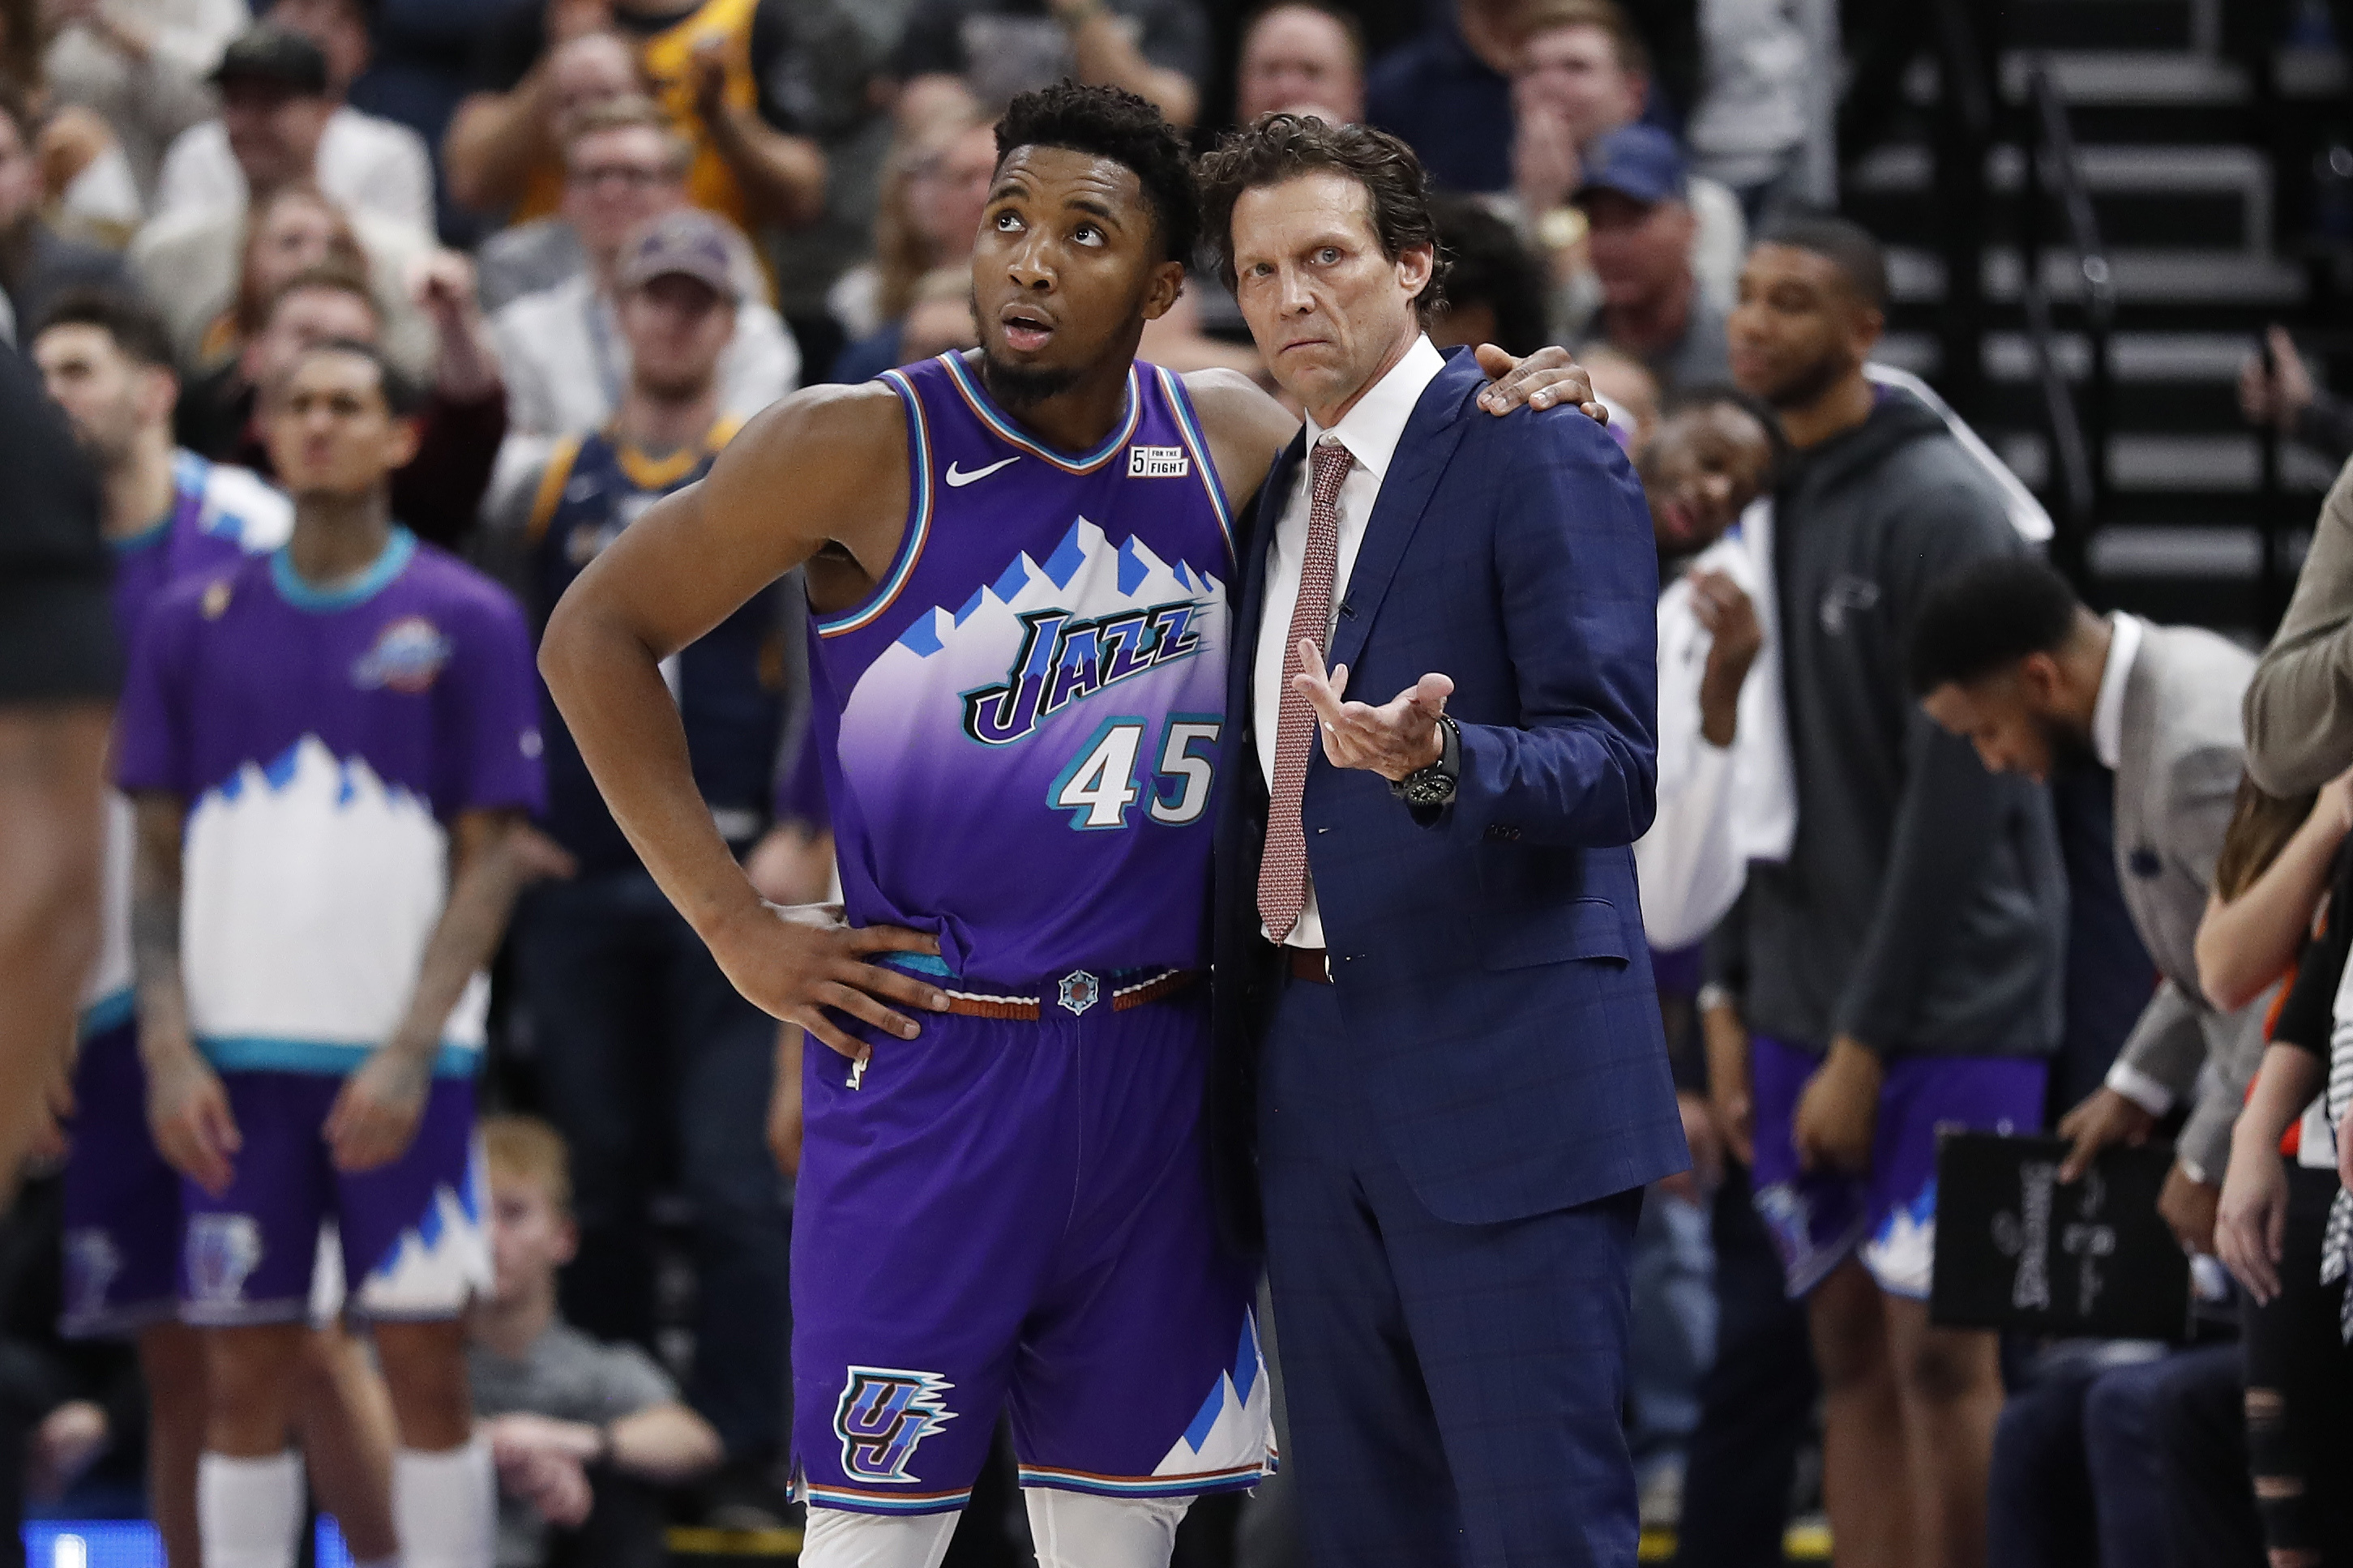 NBA: Quin Snyder supports Donovan Mitchell's activism